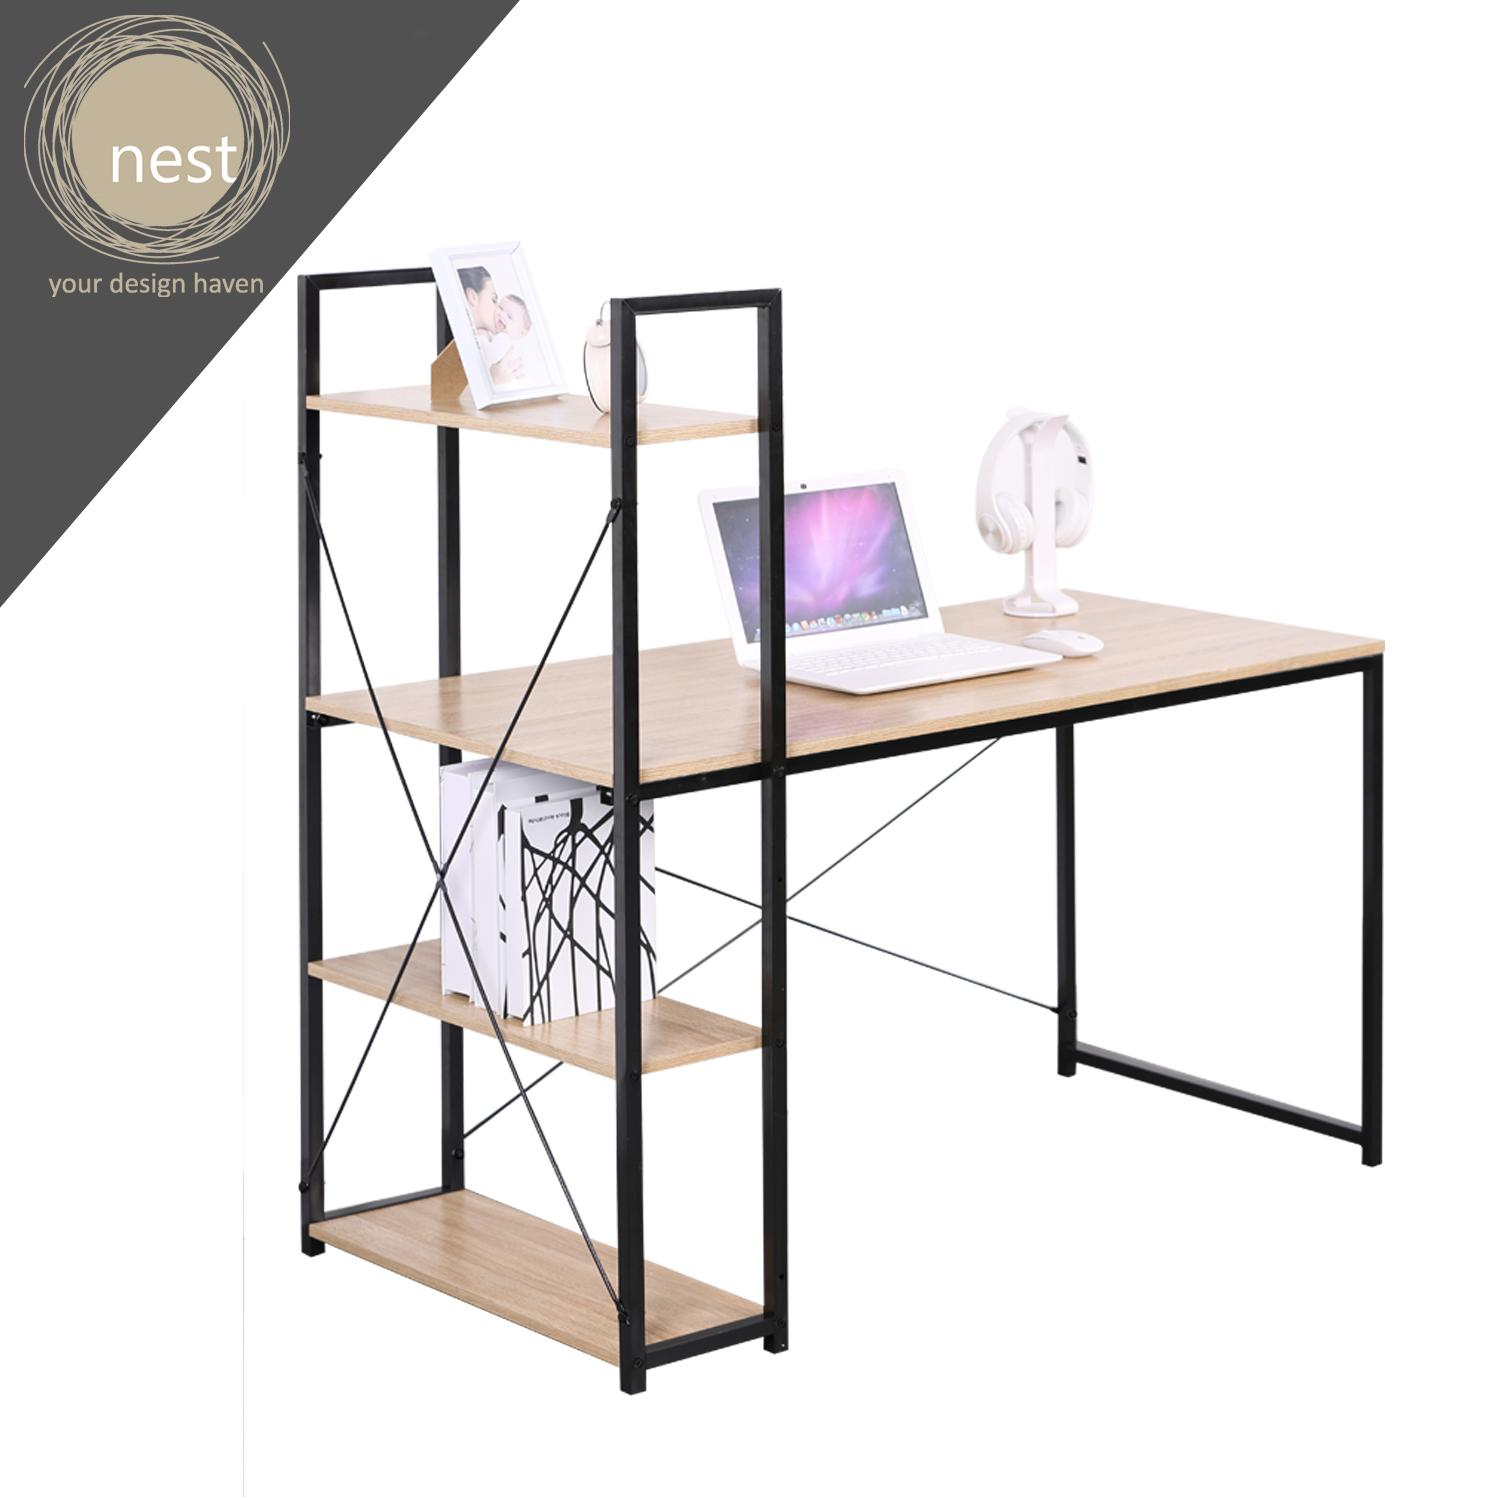 nest design lab working desk with 4 tier shelves for filing/organizing-best  gift for wedding/anniversary gift/birthday gift